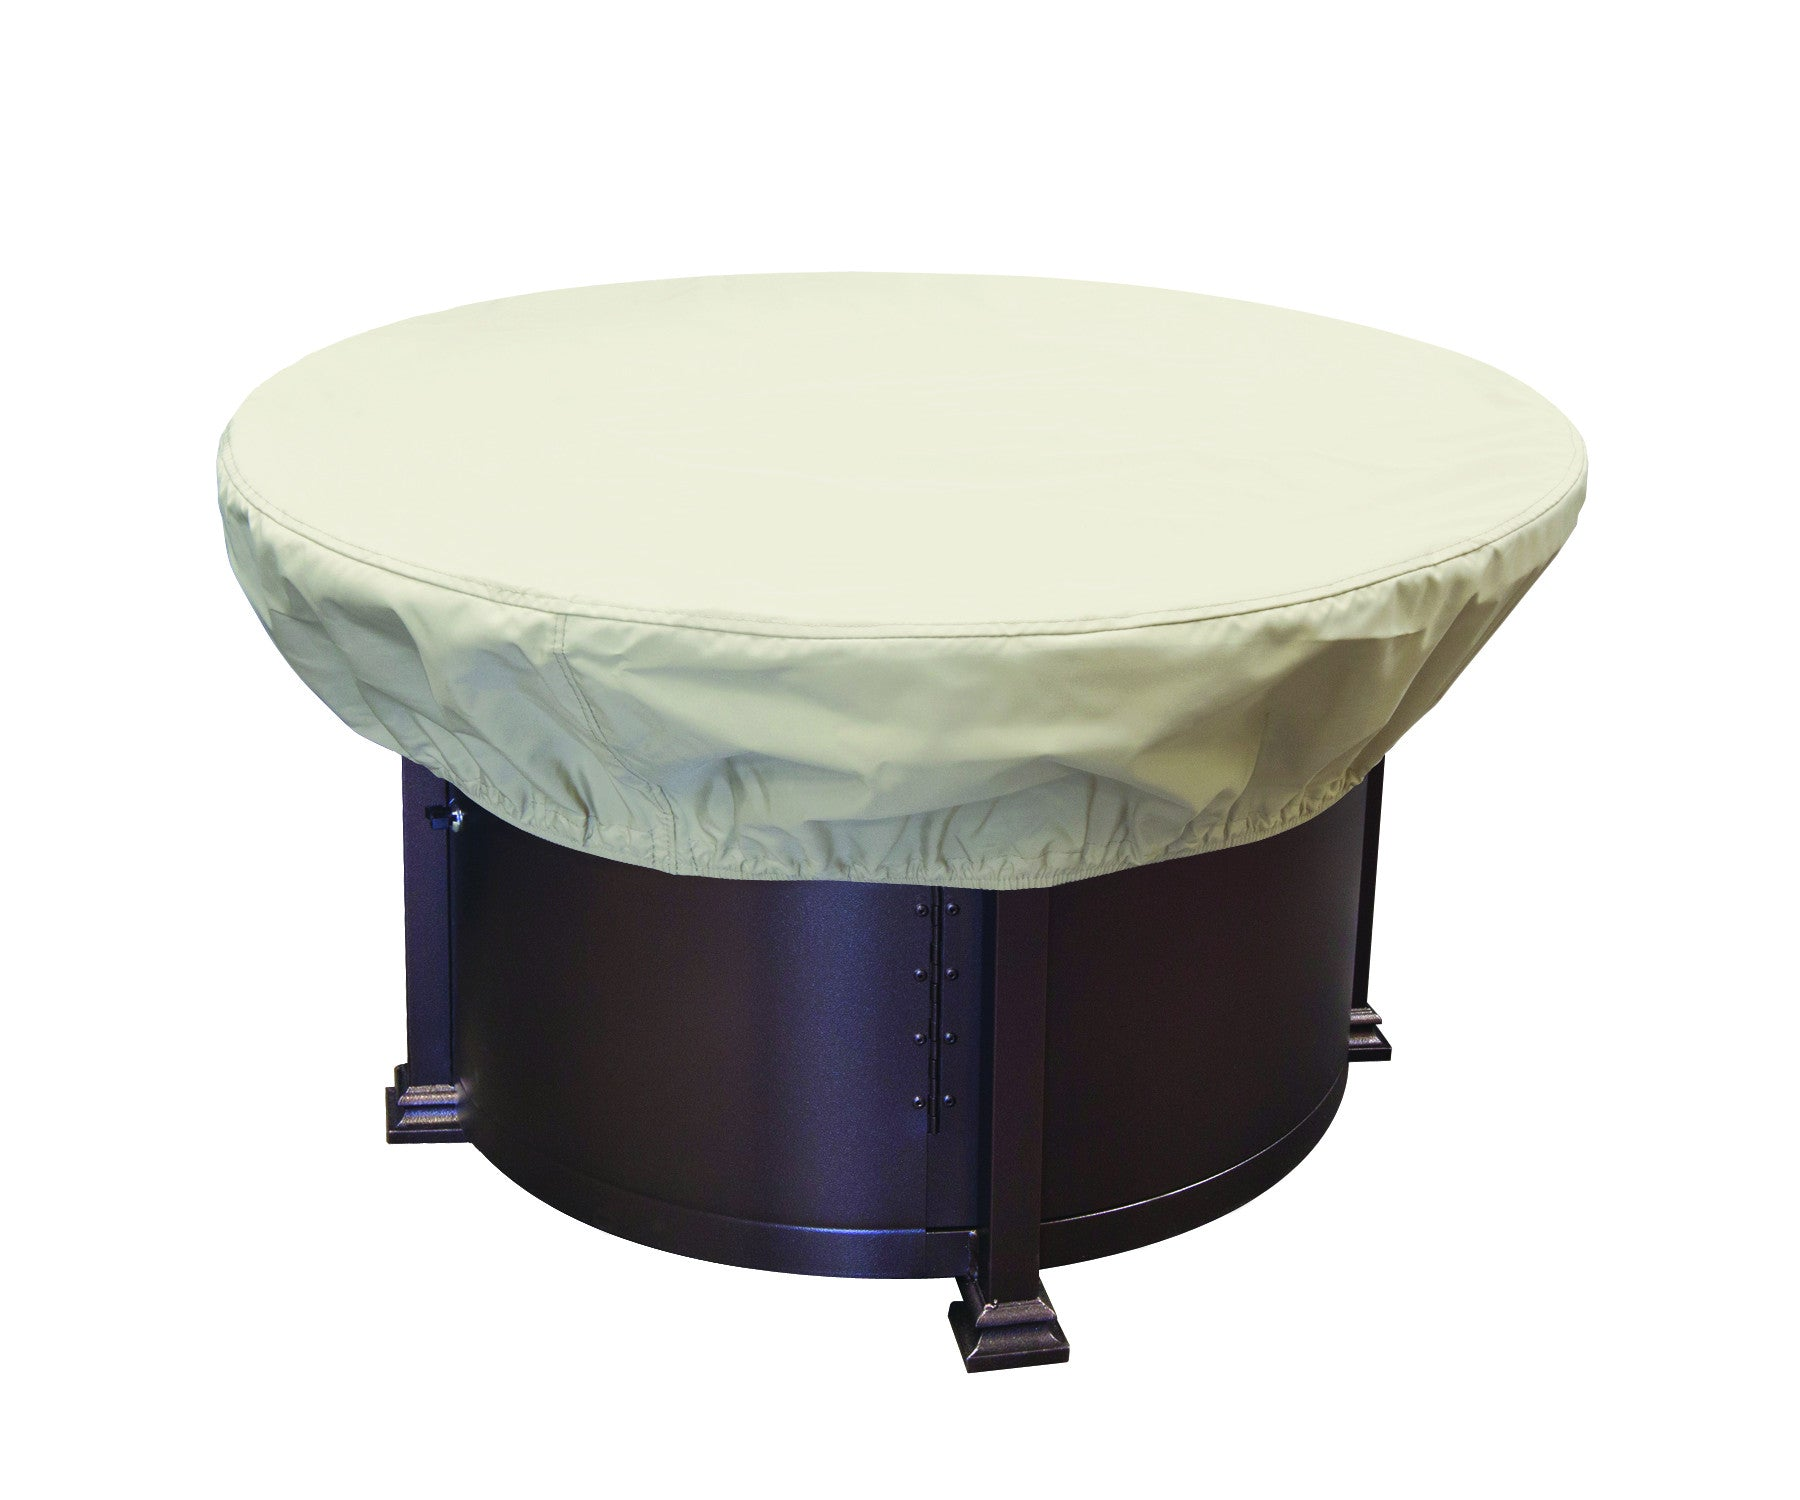 Milwaukee Pool Tables Sports Memorabilia Bar Stools Patio - Brunswick sherwood pool table